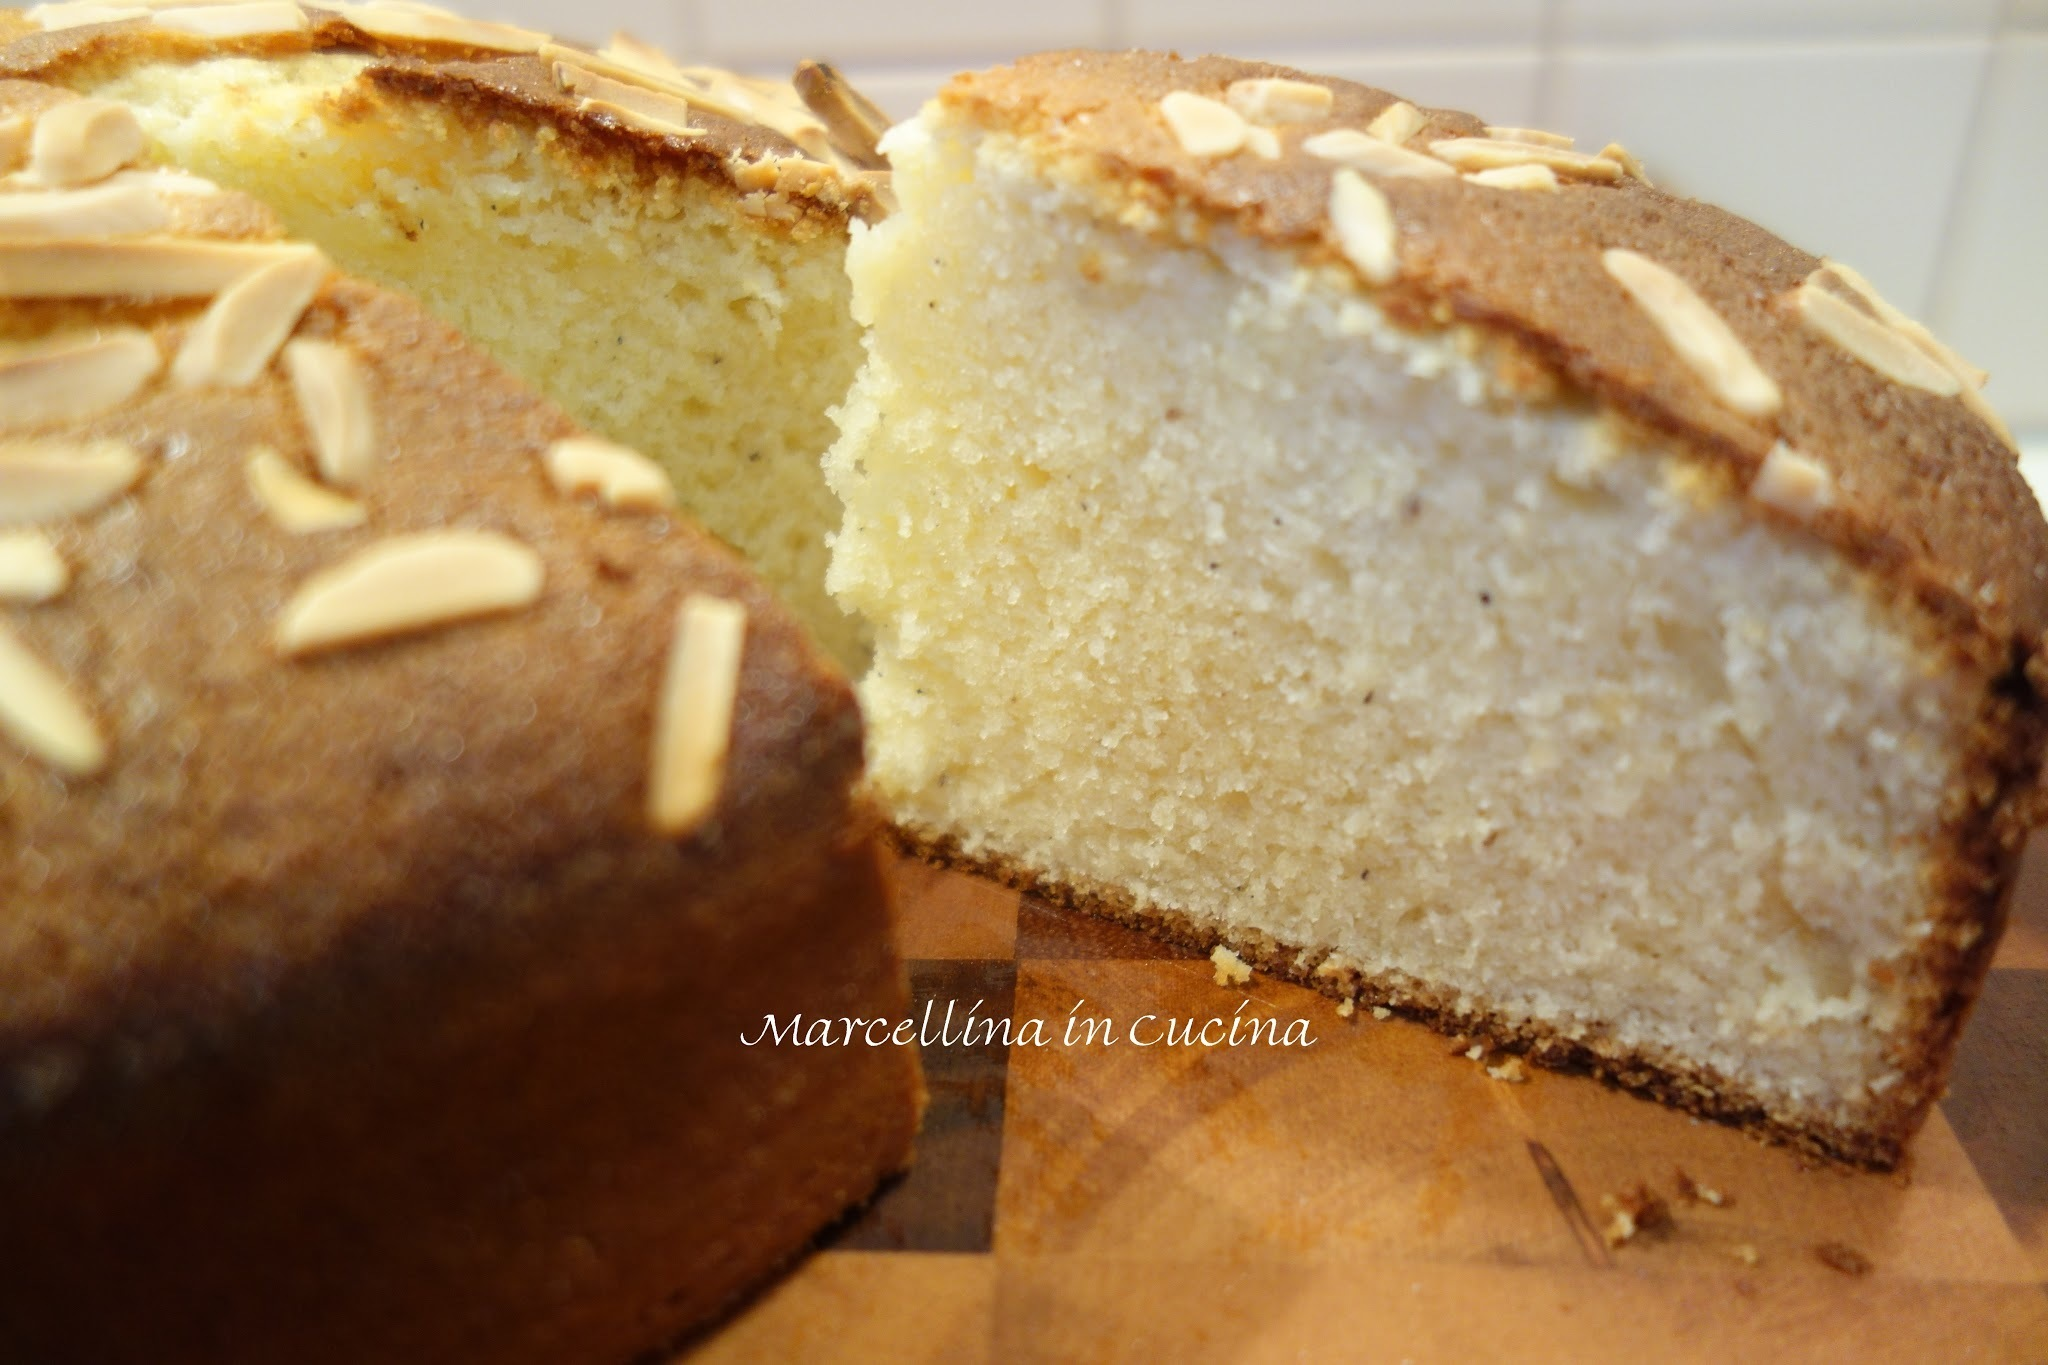 Indian Mawa Cake and Marsala Biscuits- The Daring Bakers' August 2013 Challenge